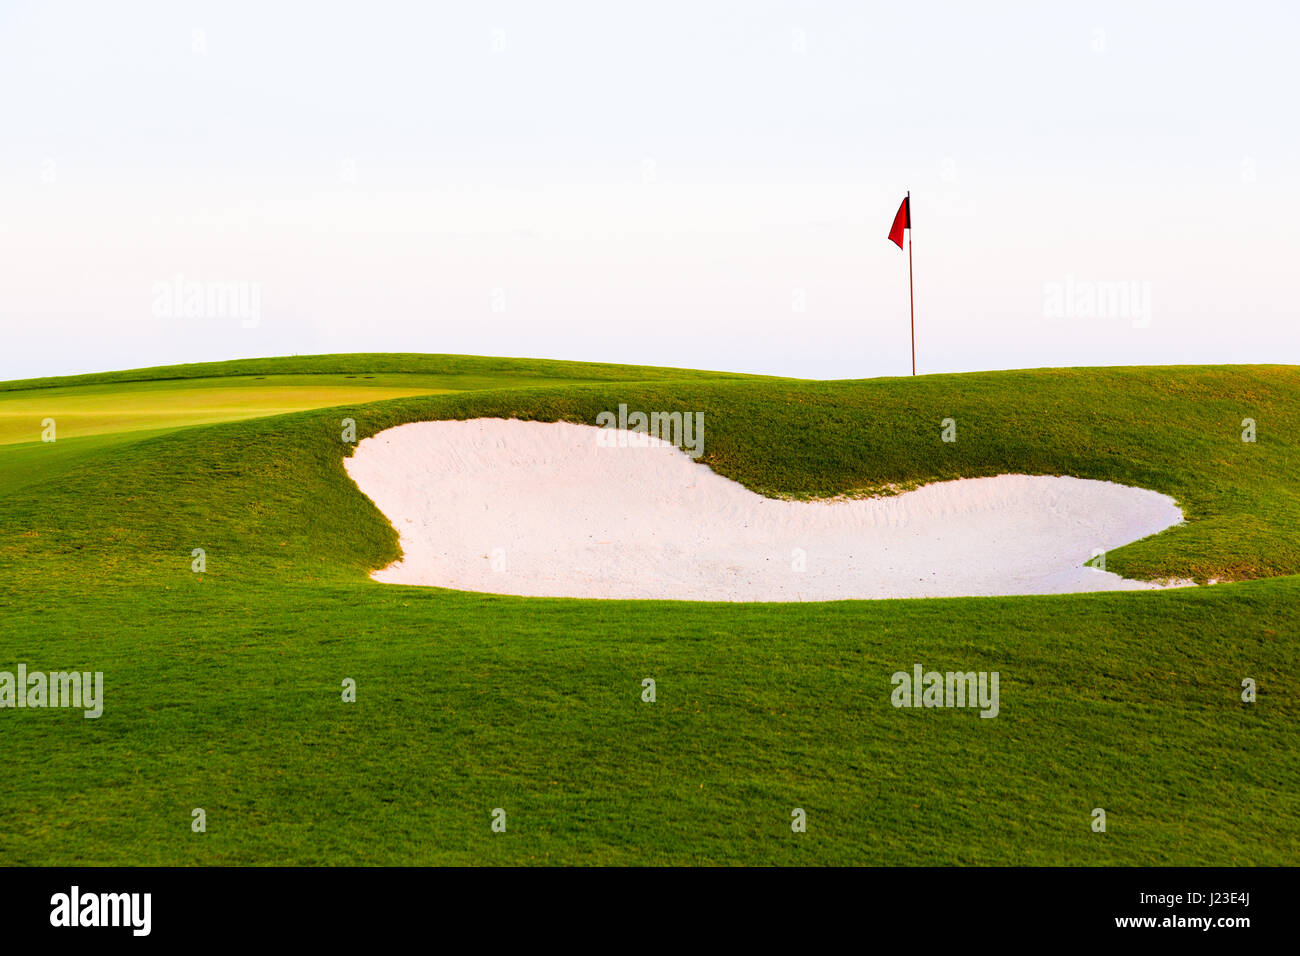 Red flag of golf hole above sand trap or golf course bunker - Stock Image